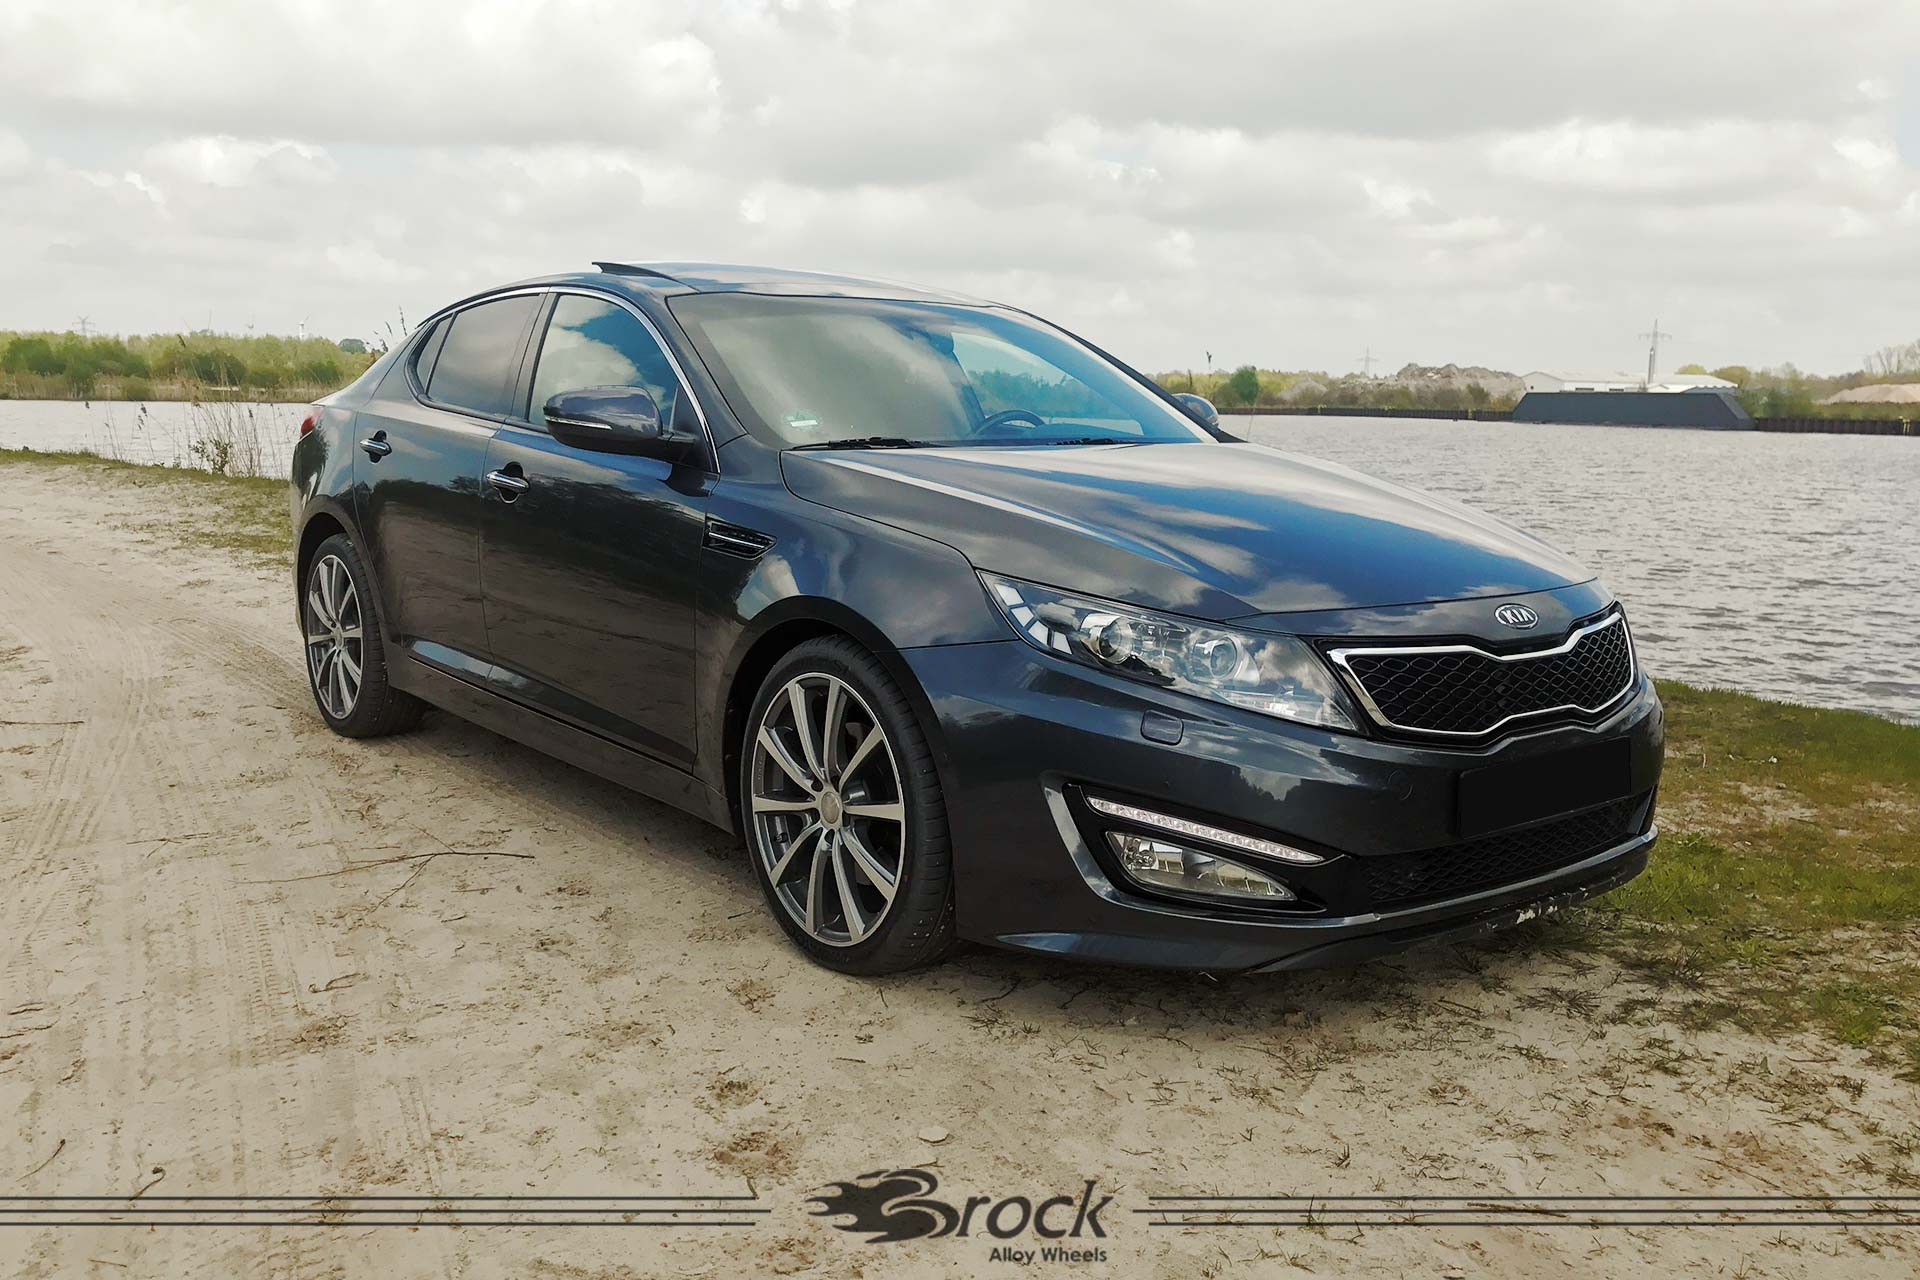 Kia Optima TF Brock B32 HGVP